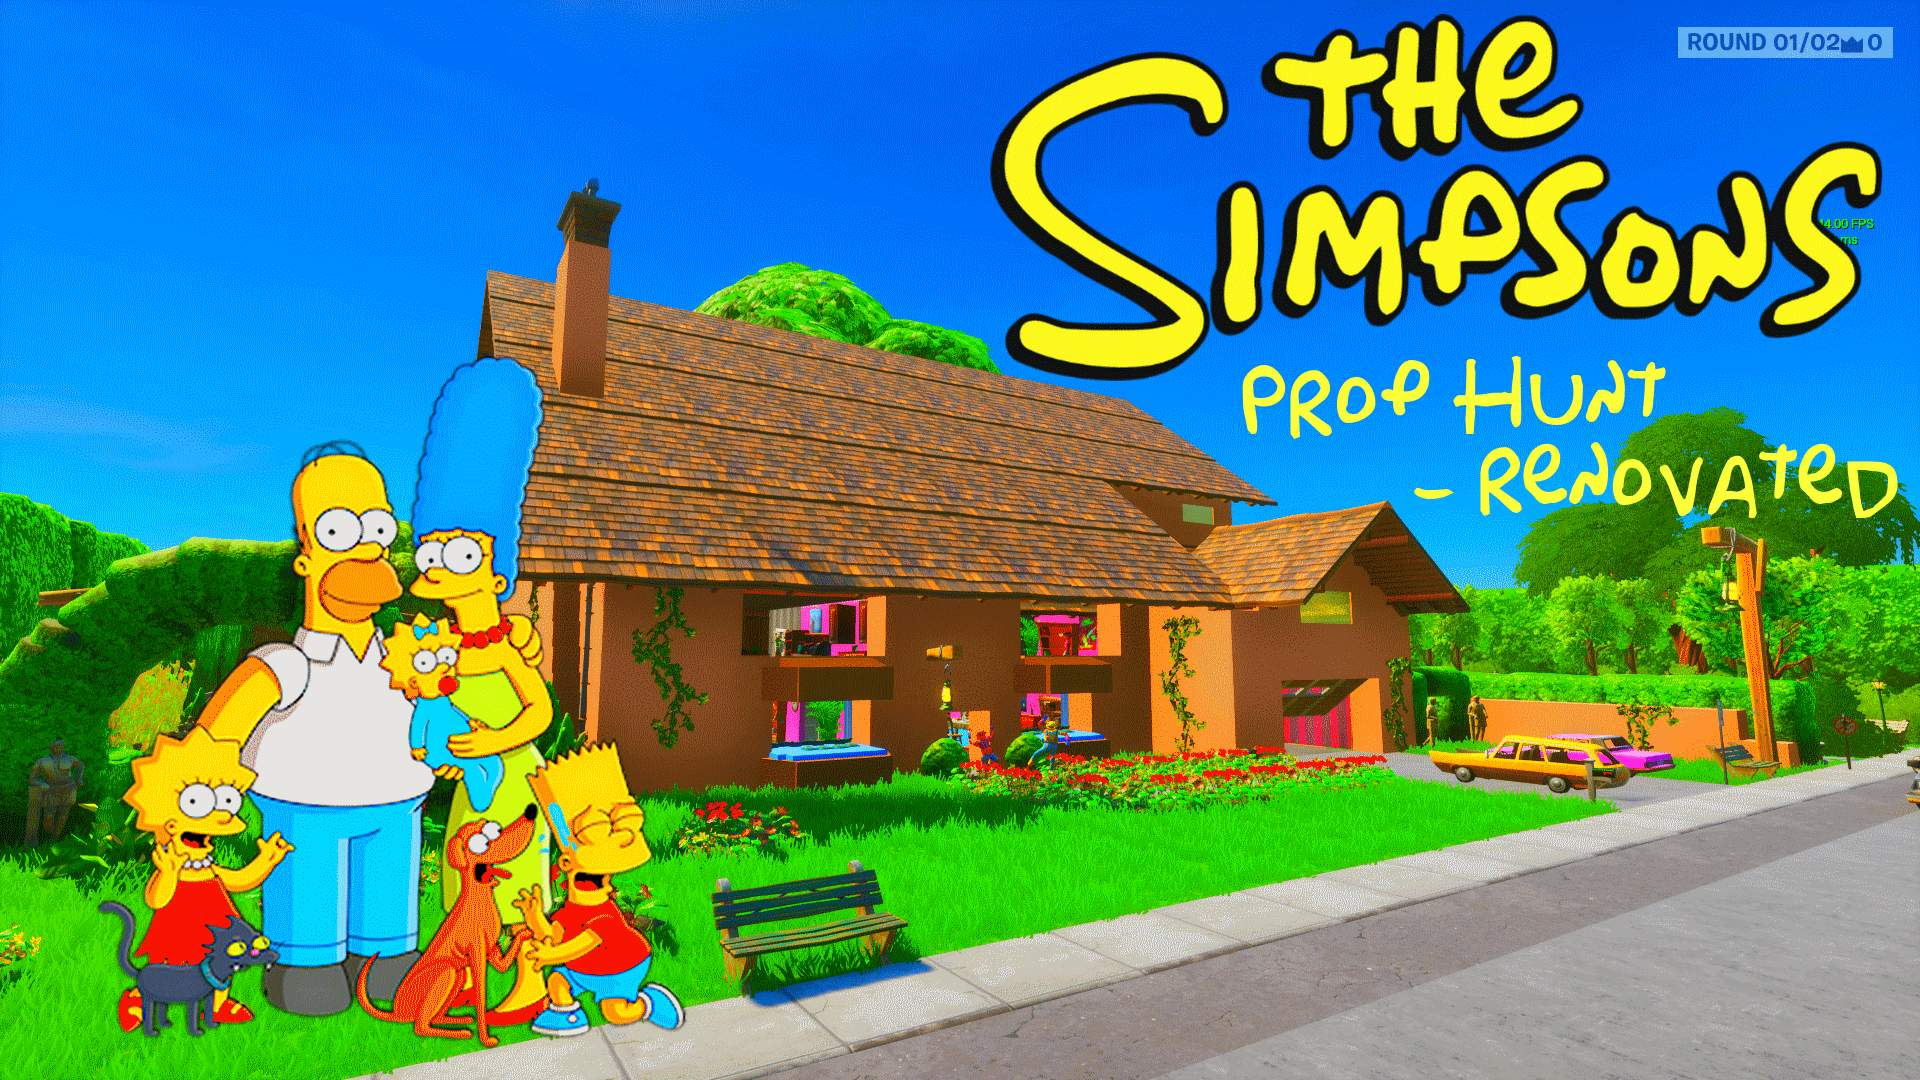 PROP HUNT: THE SIMPSONS RENOVATED